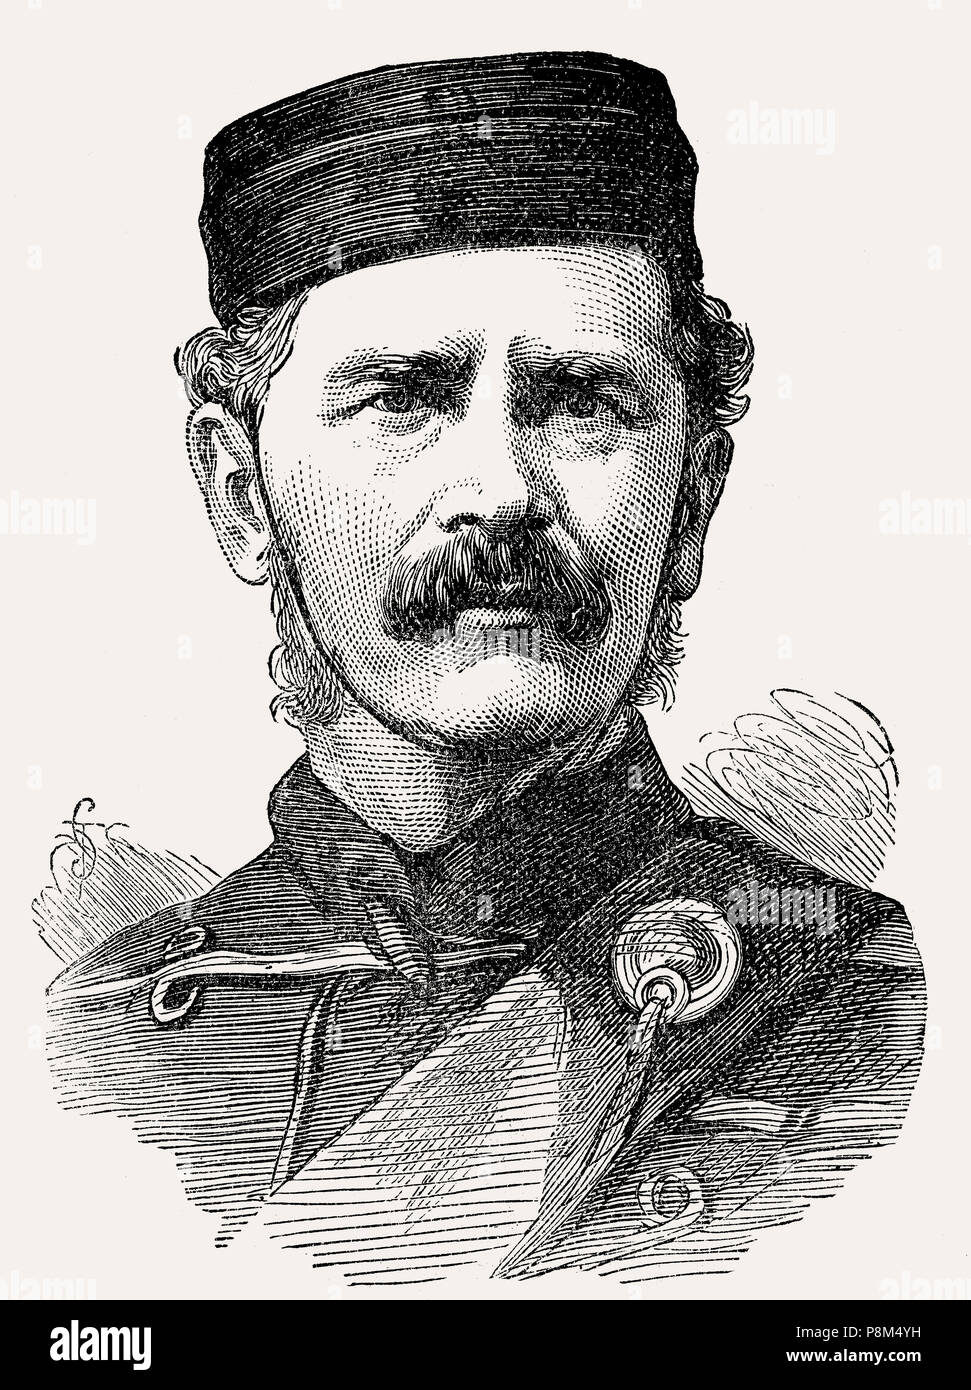 Lieutenant-General Sir Edward Newdigate, 1825 – 1902, a British Army officer, From British Battles on Land and Sea, by James Grant - Stock Image